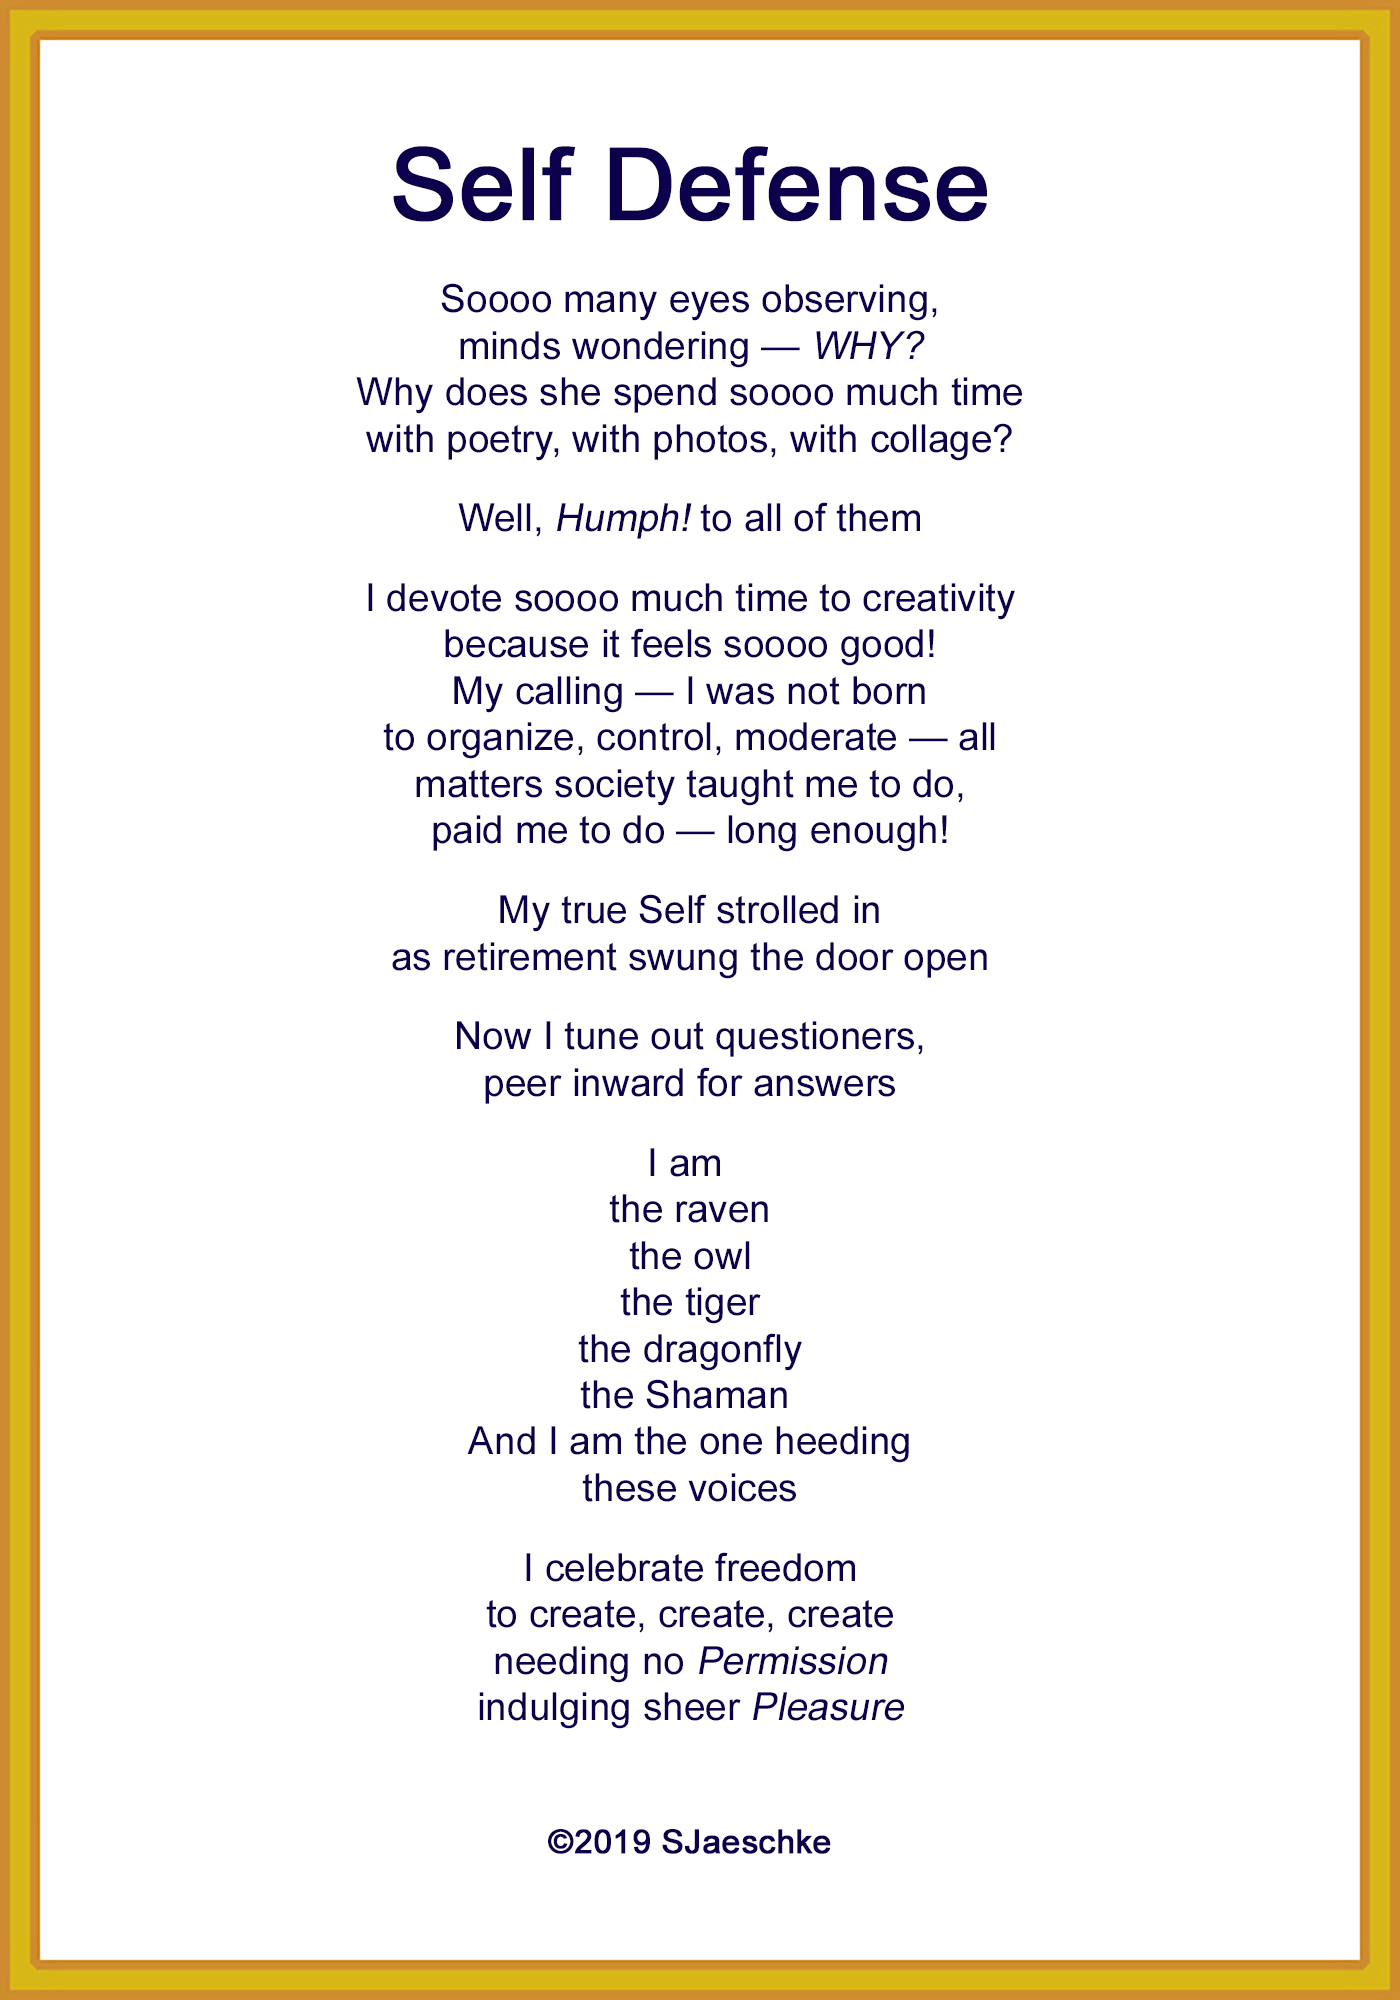 Post_2019-04-07_Poem_SelfDefense